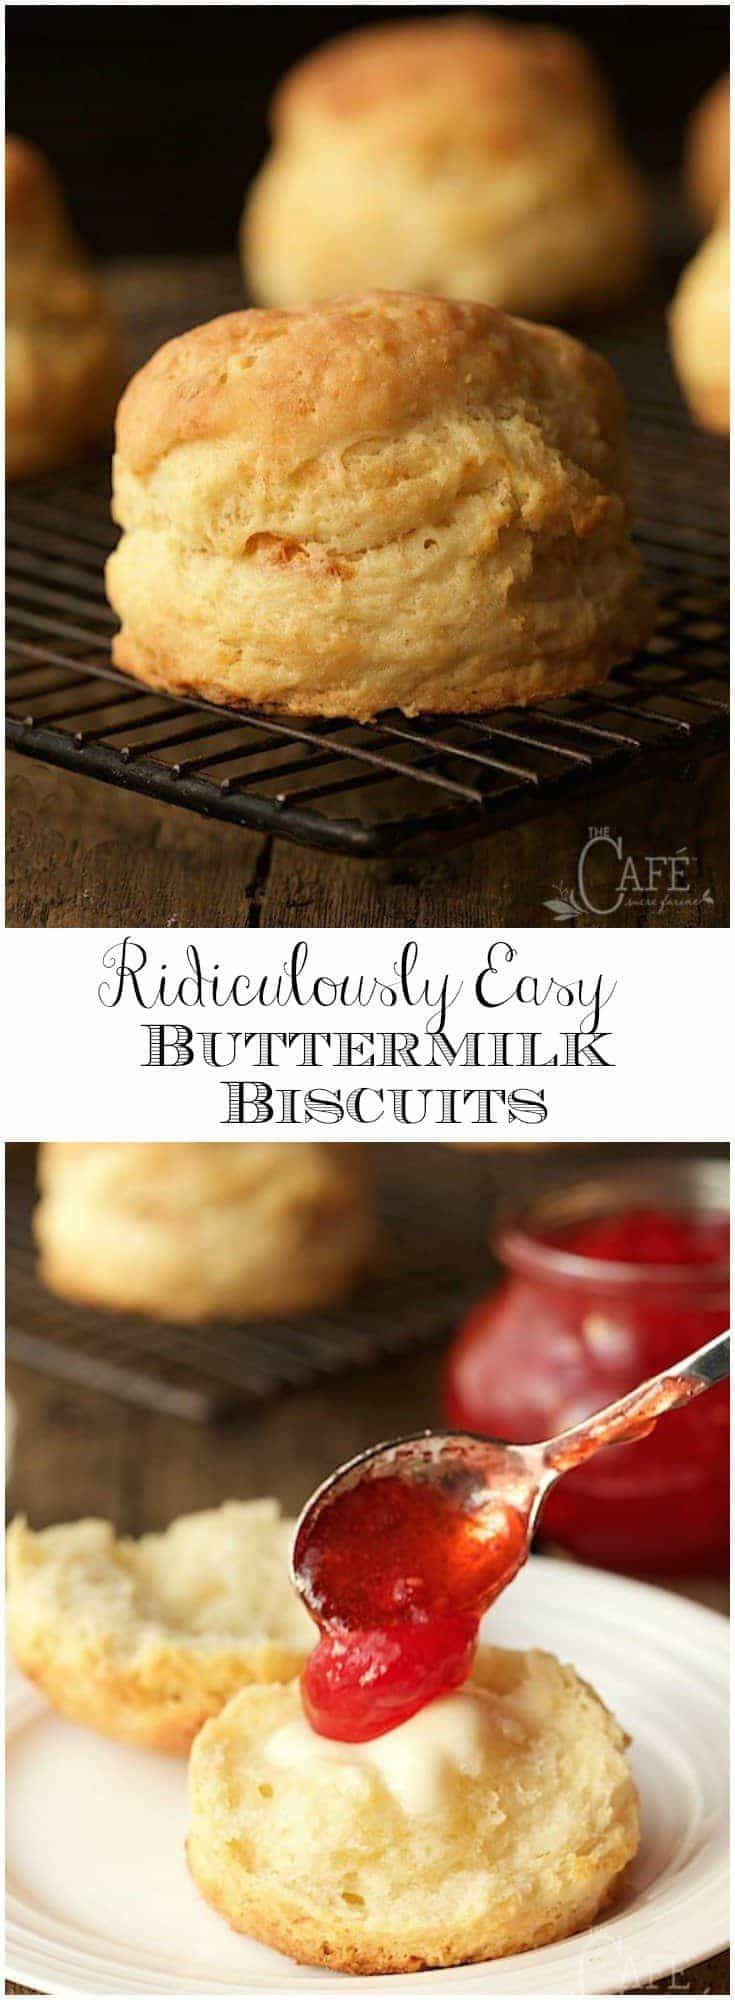 Easy as in, less than 10 minutes to throw together. Next thing you know, tall, flaky, incredibly delicious biscuits! will be rolling out of your oven! via @cafesucrefarine